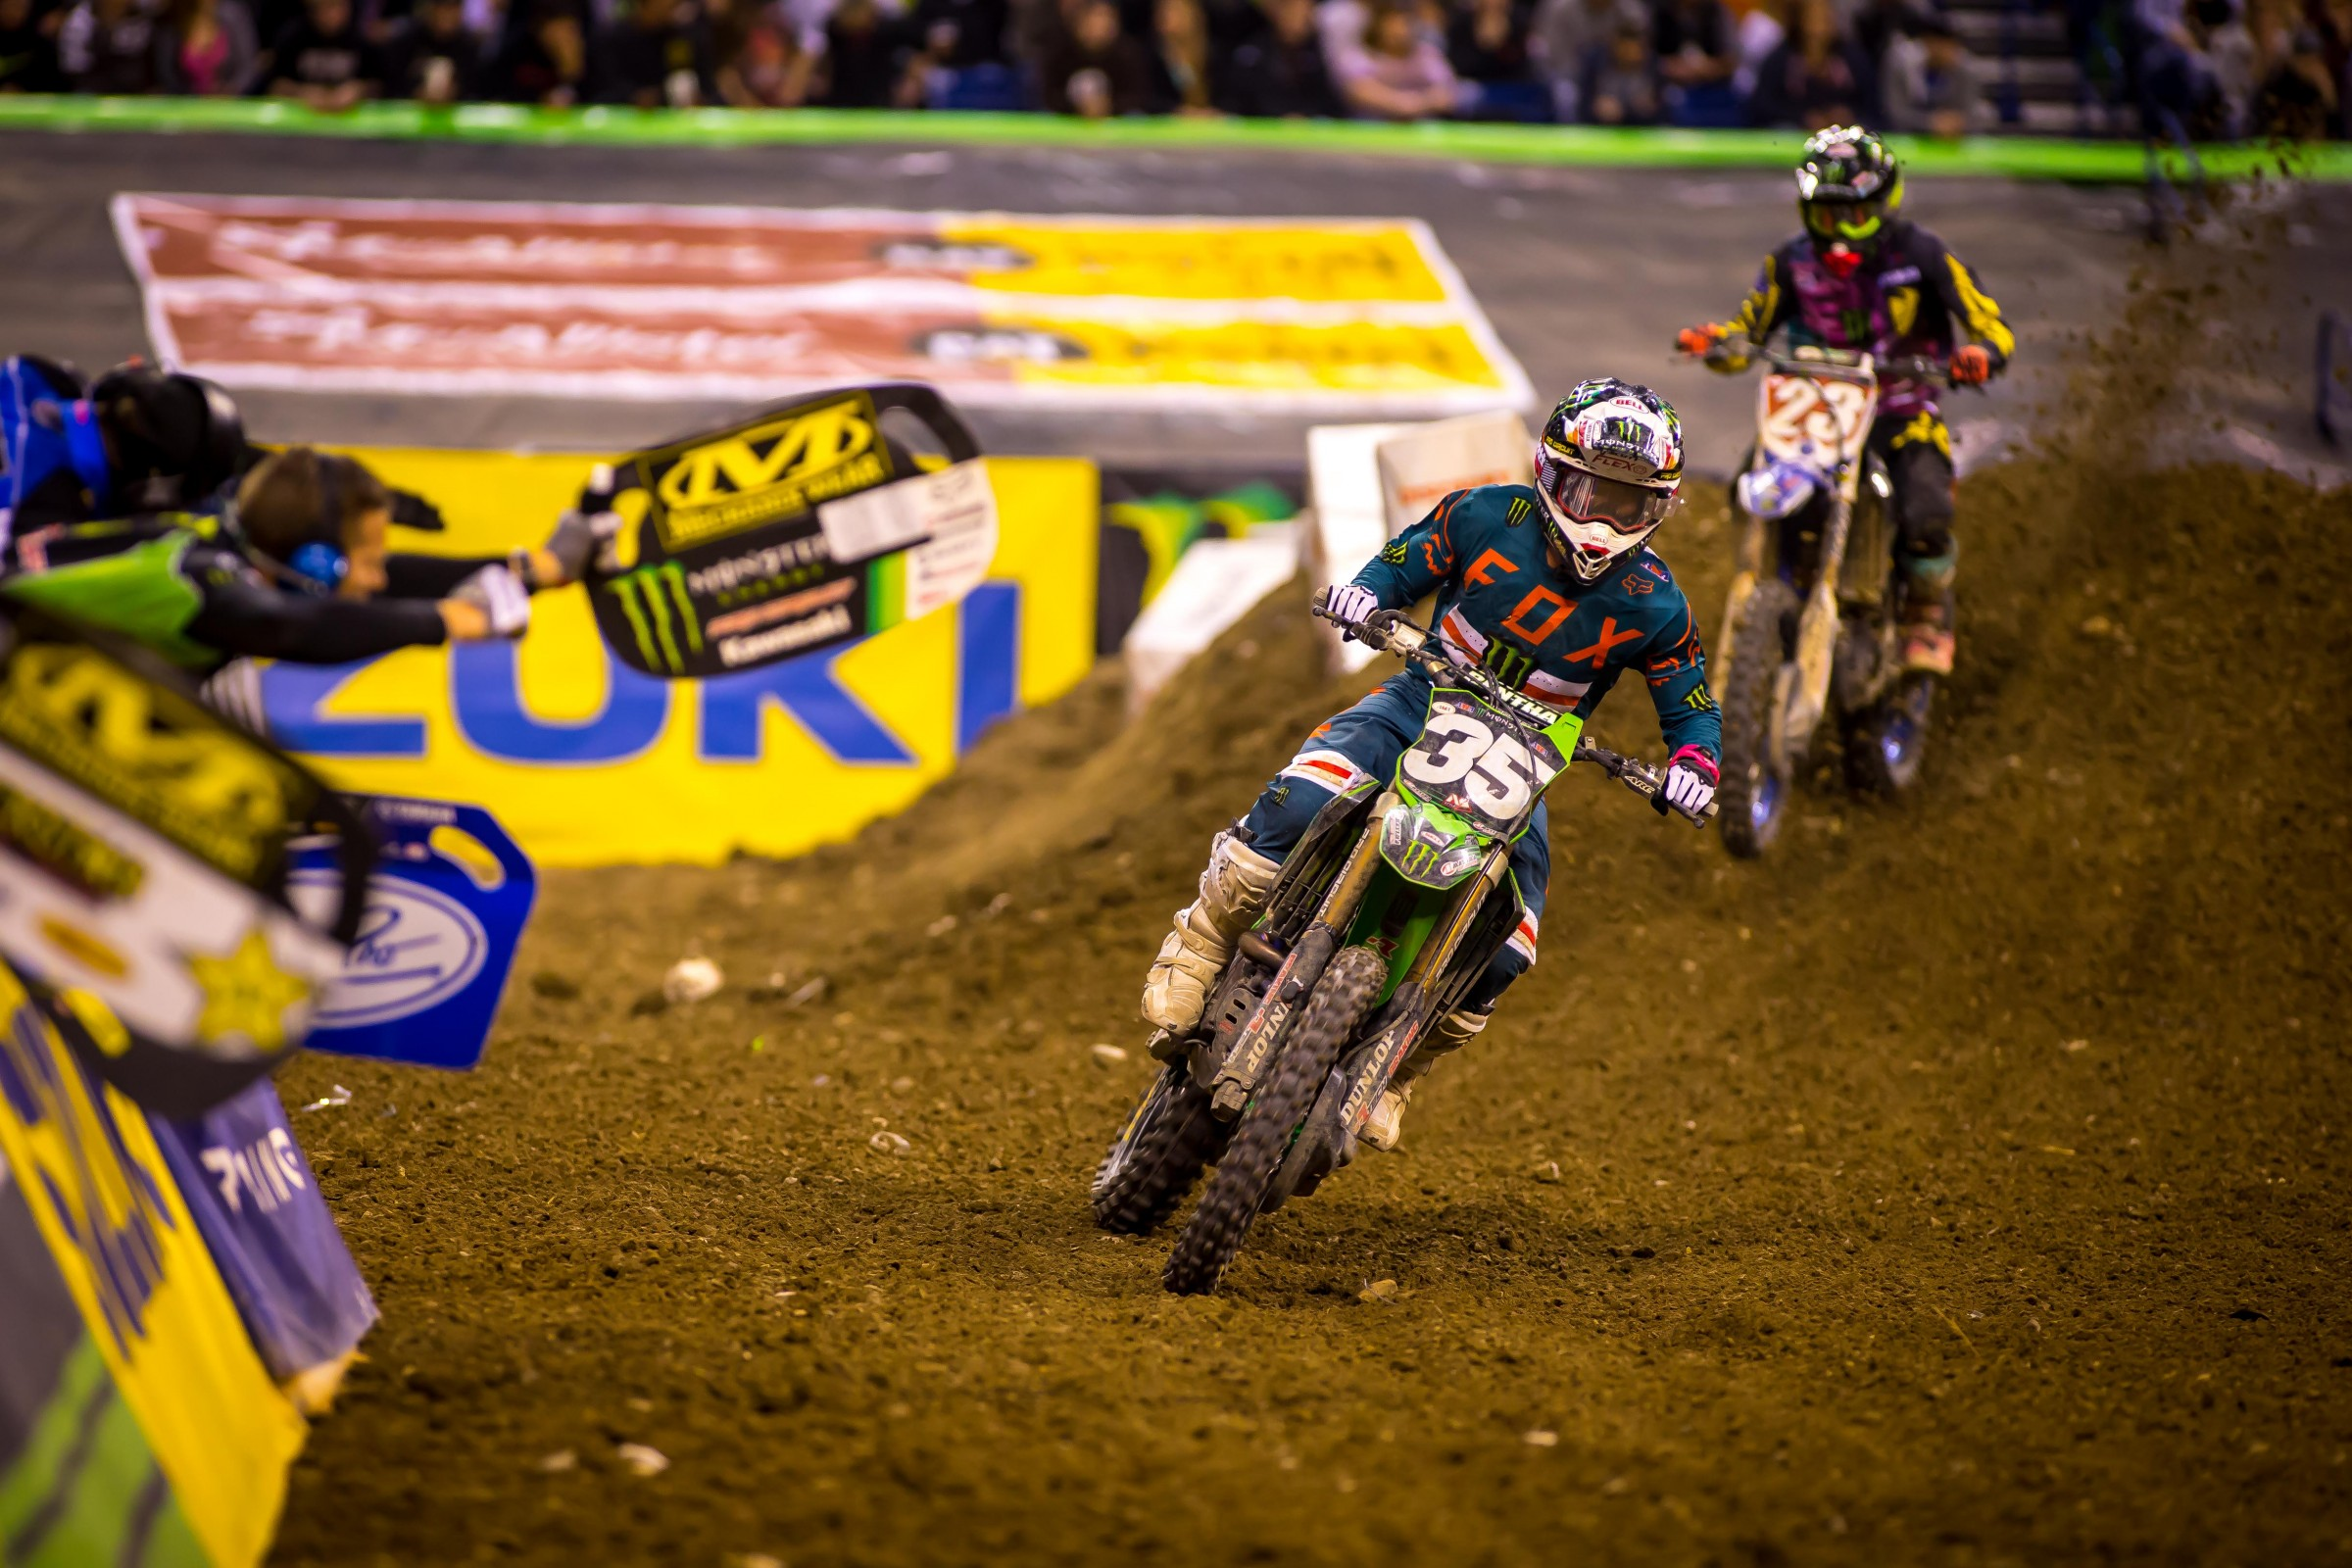 Can Savatgy (35) pick up points on Plessinger this weekend?